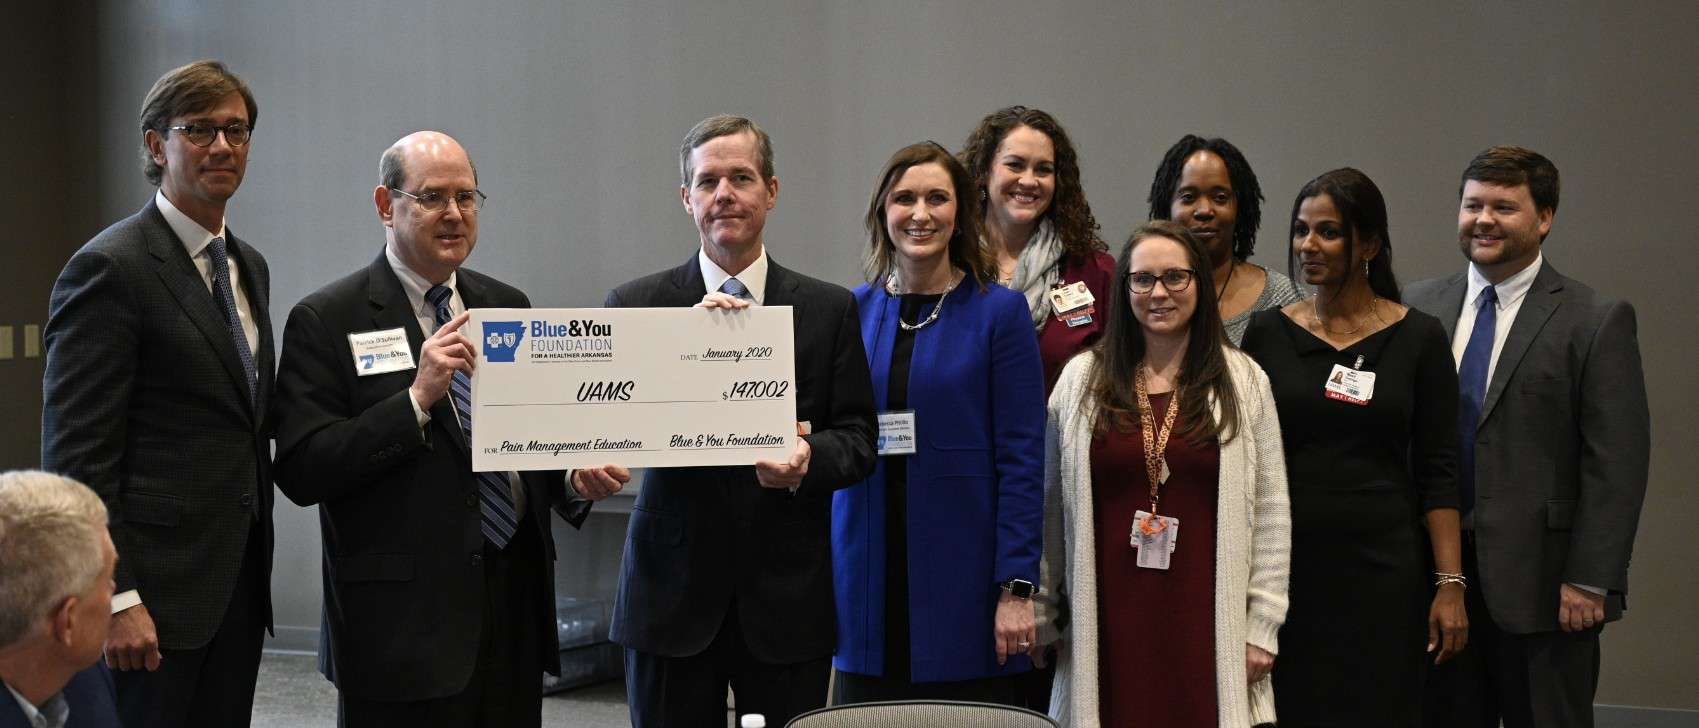 UAMS Chancellor Cam Patterson, M.D., MBA, receives the check from Patrick O'Sullivan, Blue & You Foundation executive director. Beau Blair Jr., UAMS Board of Advisors chair (at left) also accepted along with members of the AR-IMPACT team.